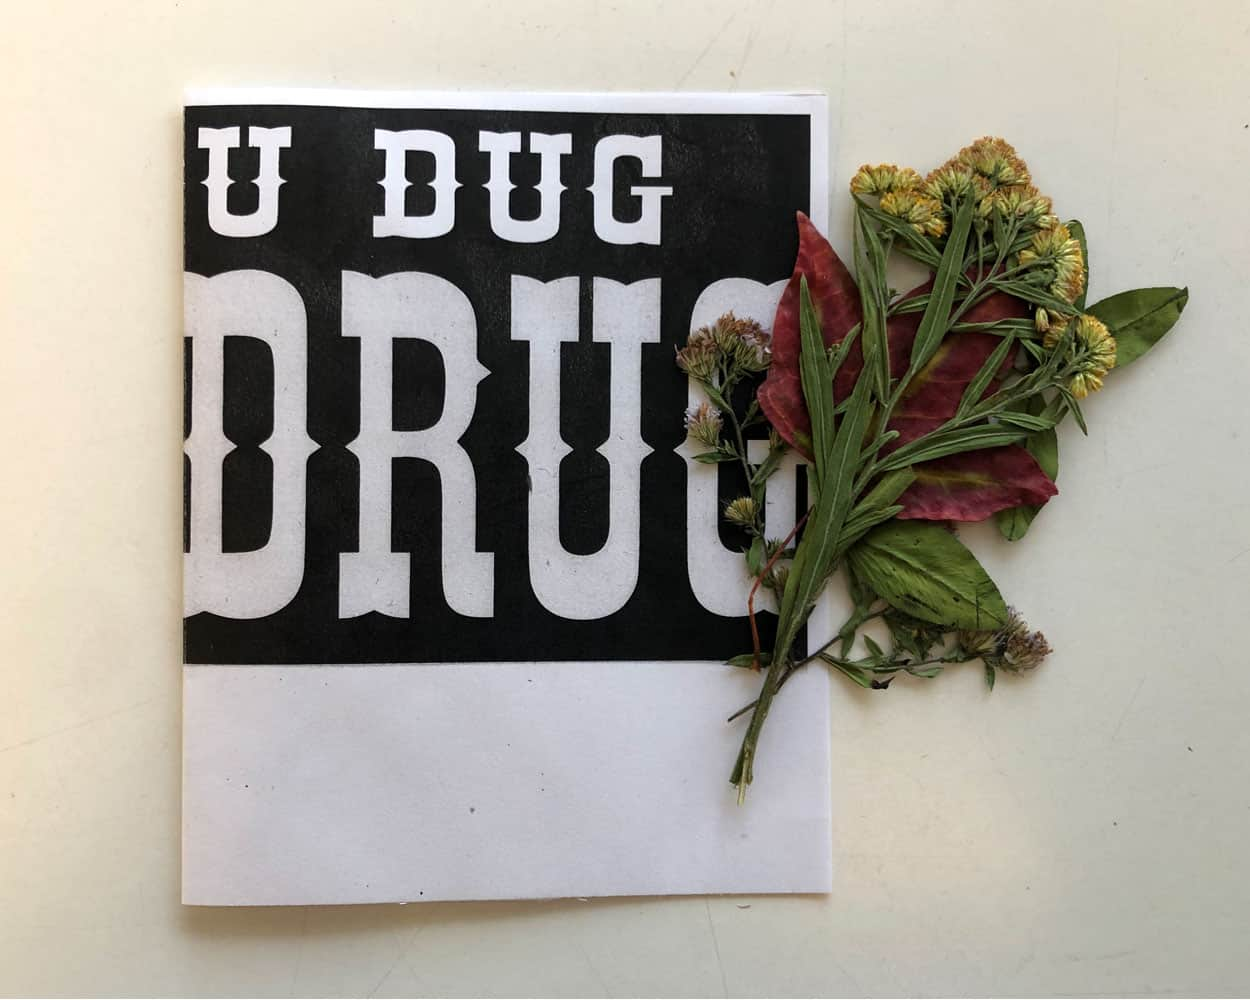 a folded piece of paper with the letters dug written acorss the top and drug in larger letters across the bottom. Pressed flowers sit on the side.